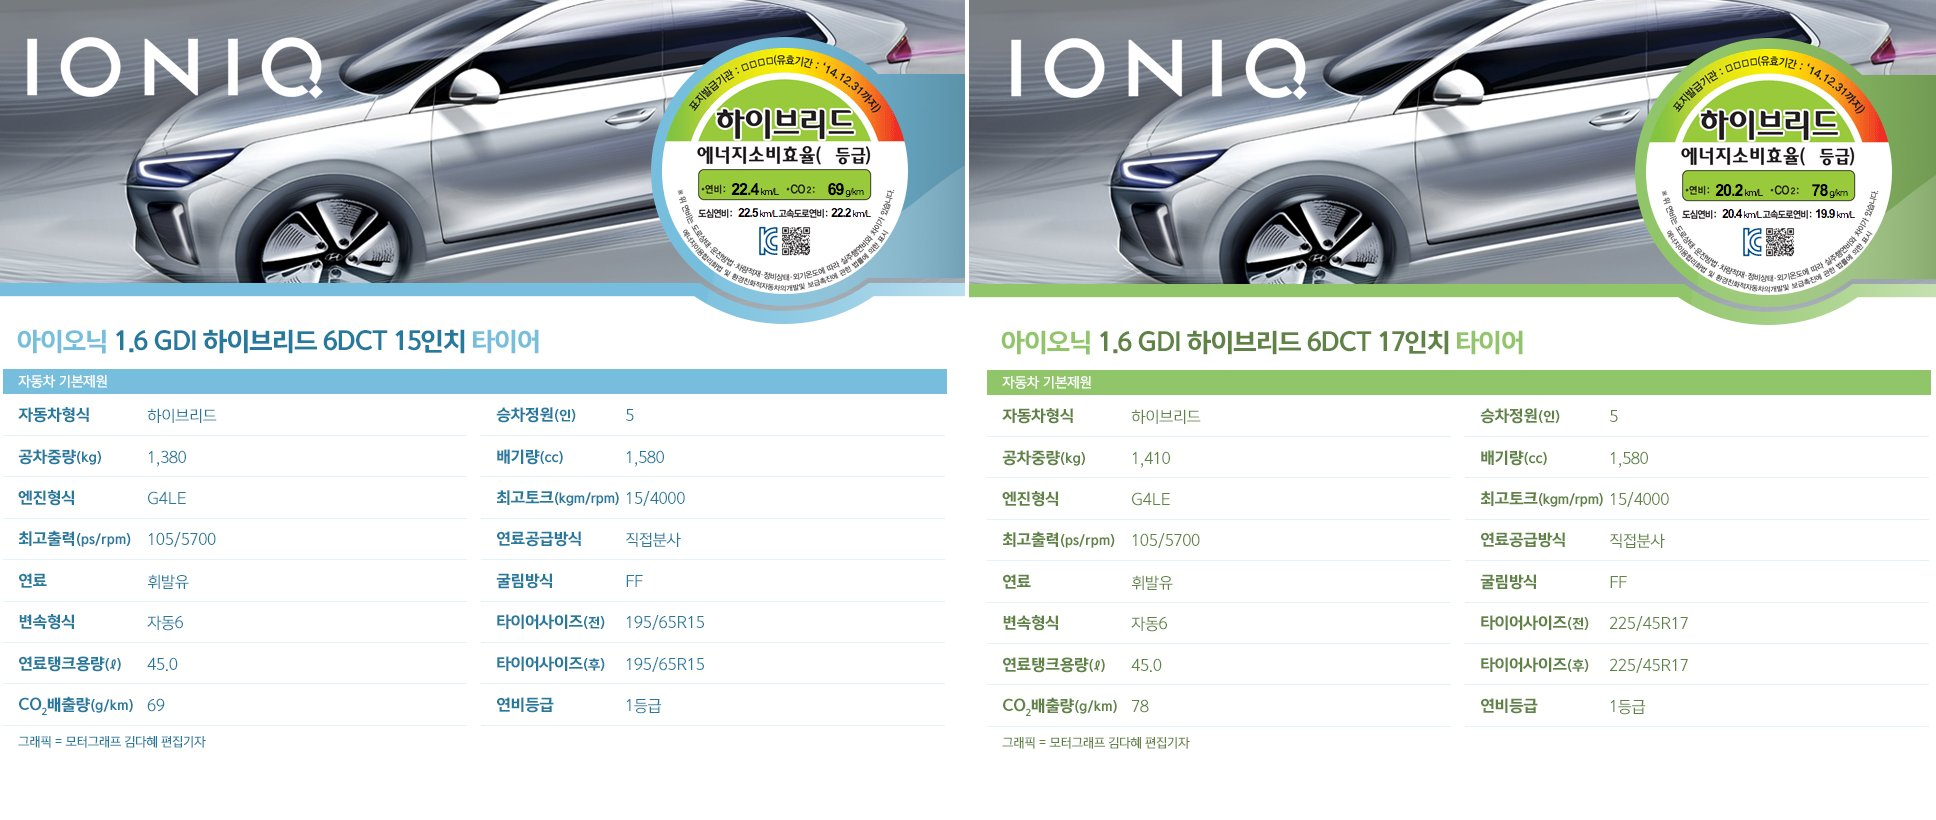 Hyundai Ioniq Official Sketch Fuel Economy Figures